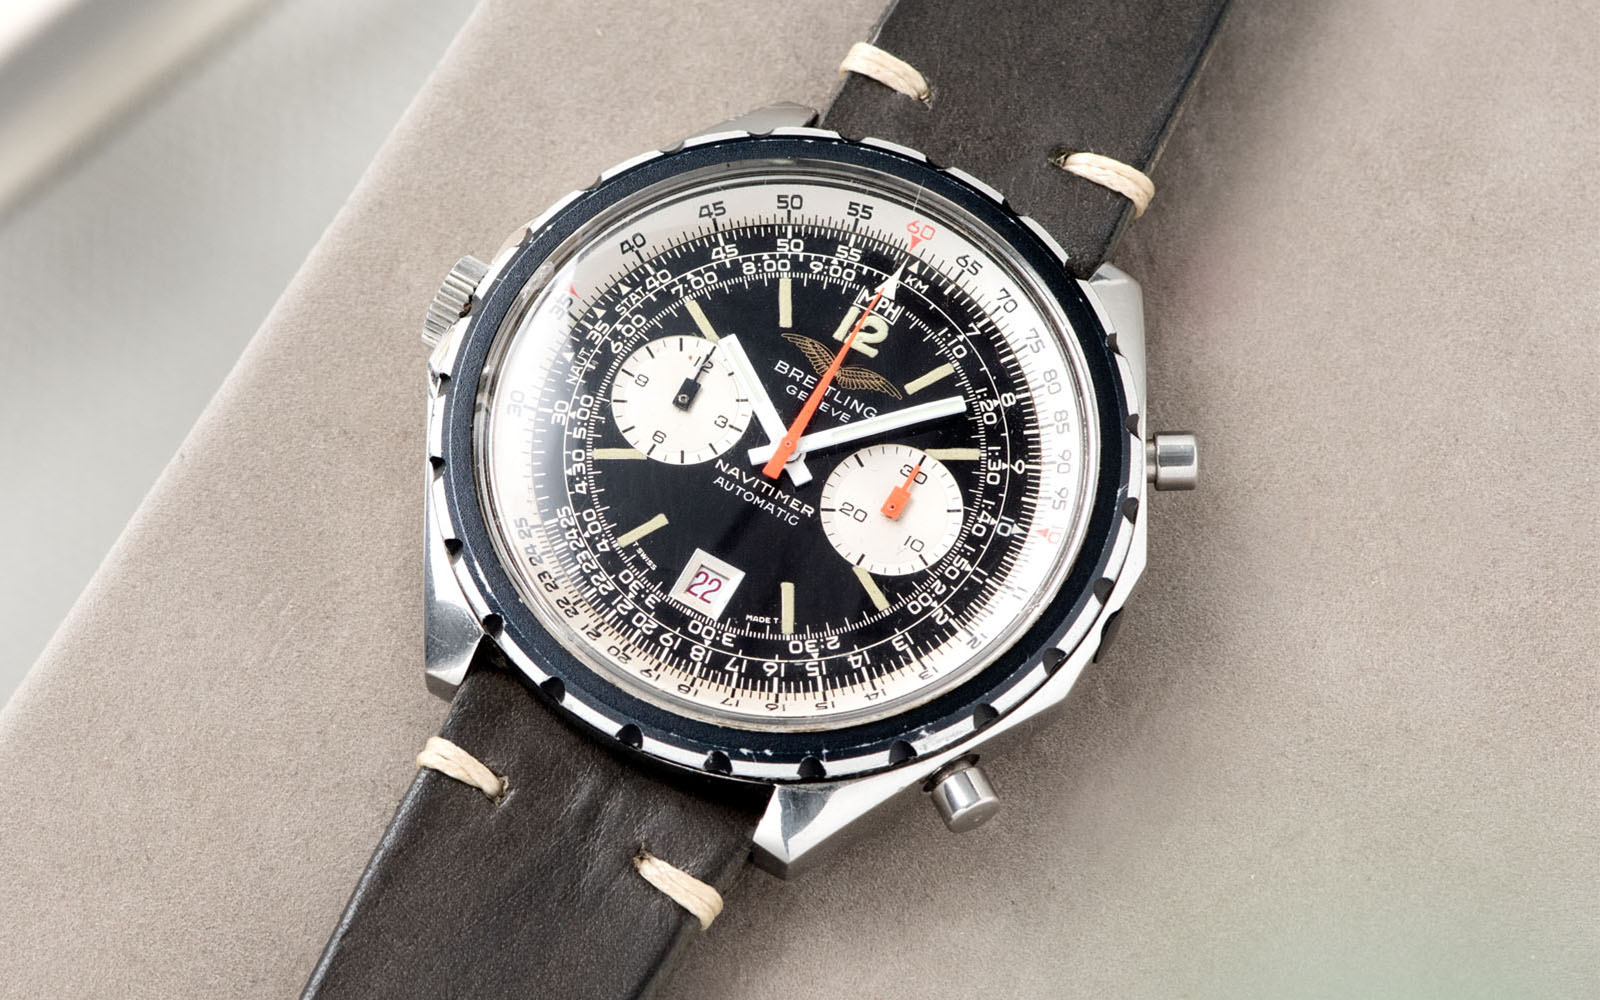 Bulang and Sons_Strapguide_Breitling Navitimer ref issued to iraqi air force ref 1806_Piombo Grey Leather Watch Strap _Banner